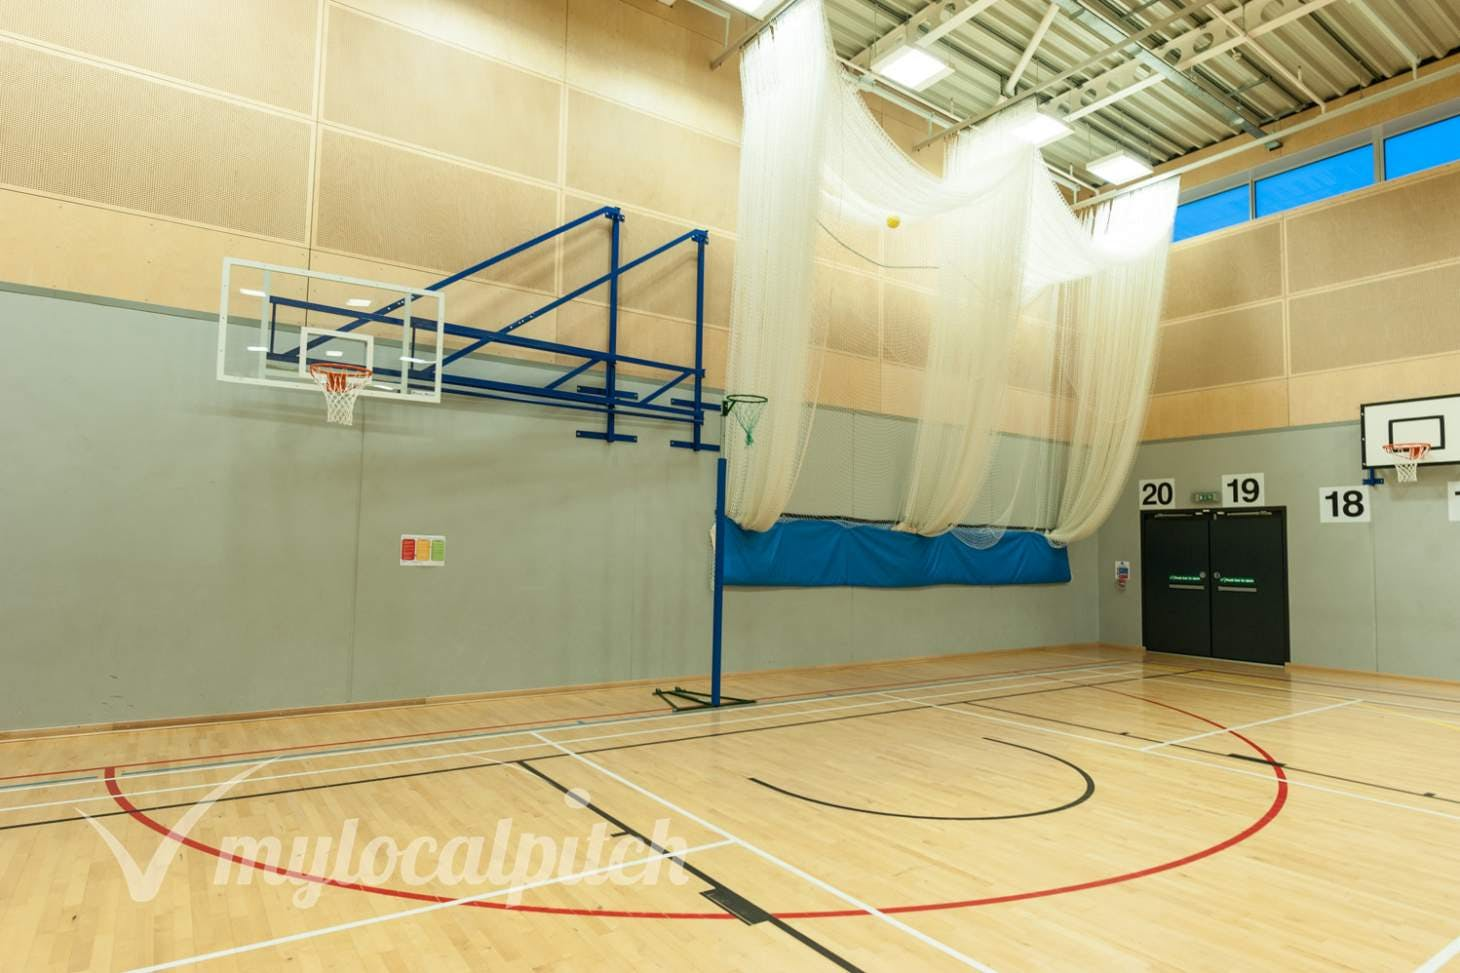 Irlam and Cadishead College Indoor basketball court